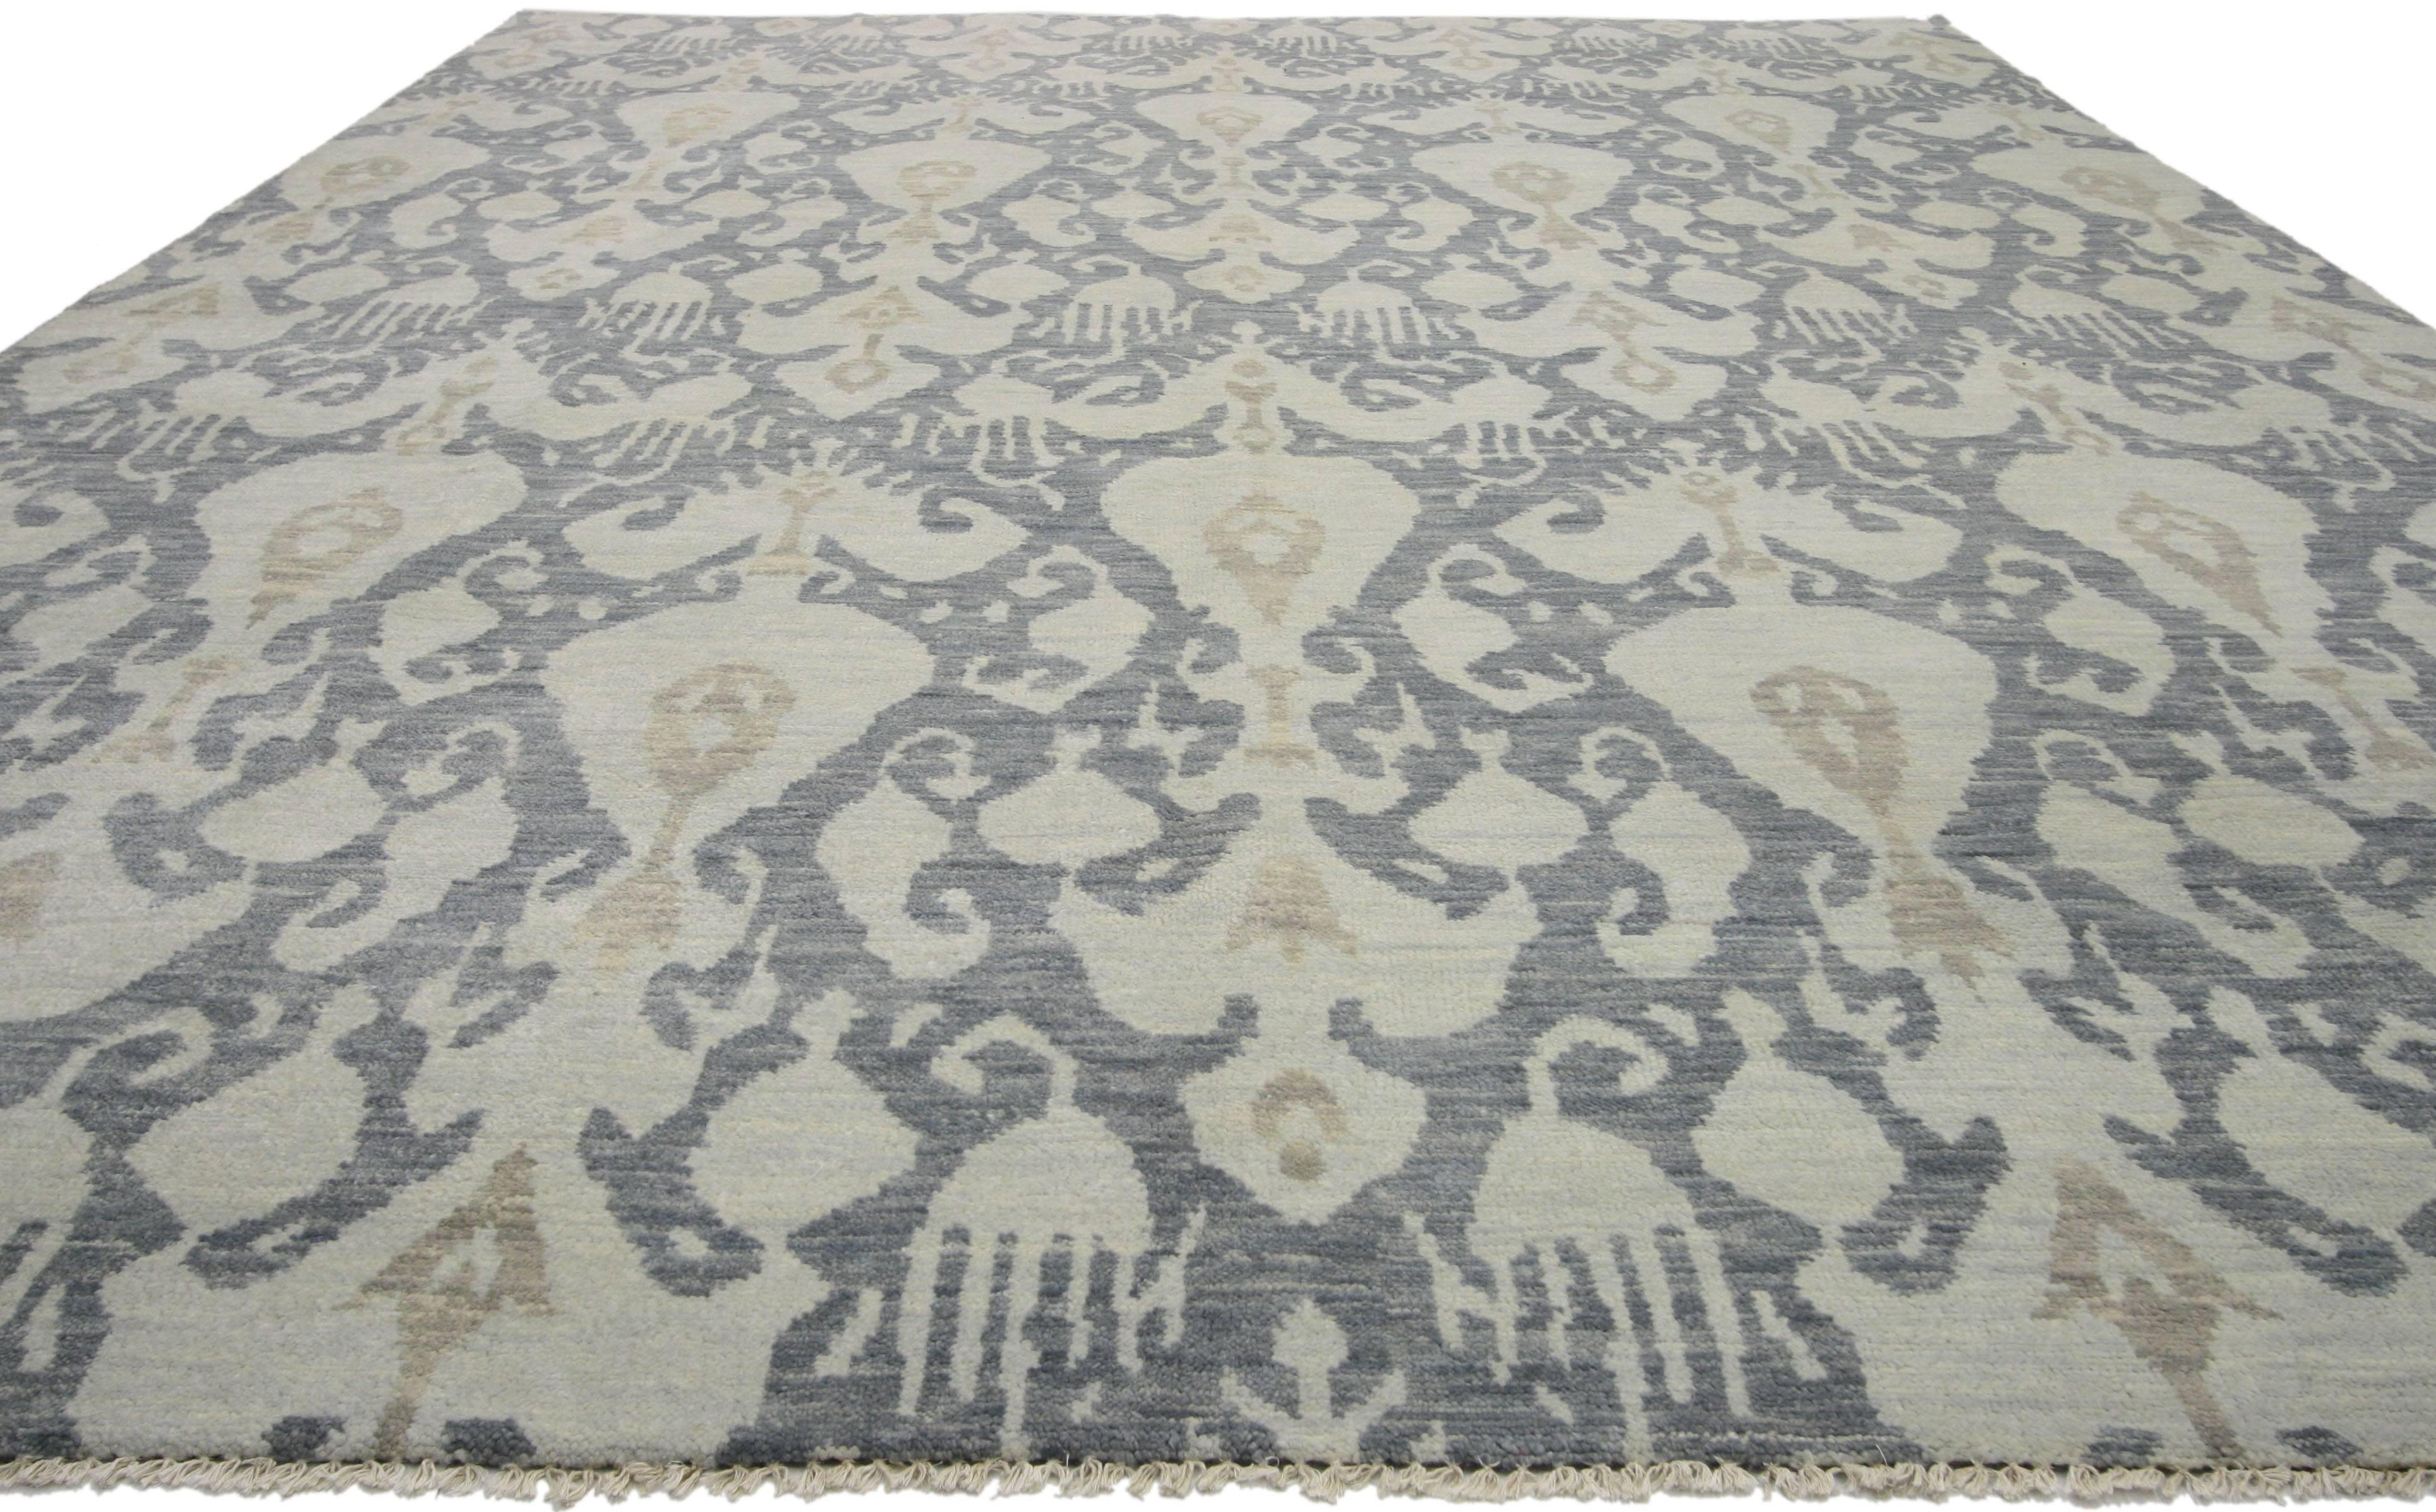 Indian New Modern Transitional Ikat Style Area Rug, Gray-Blue Ikat Rug For  Sale